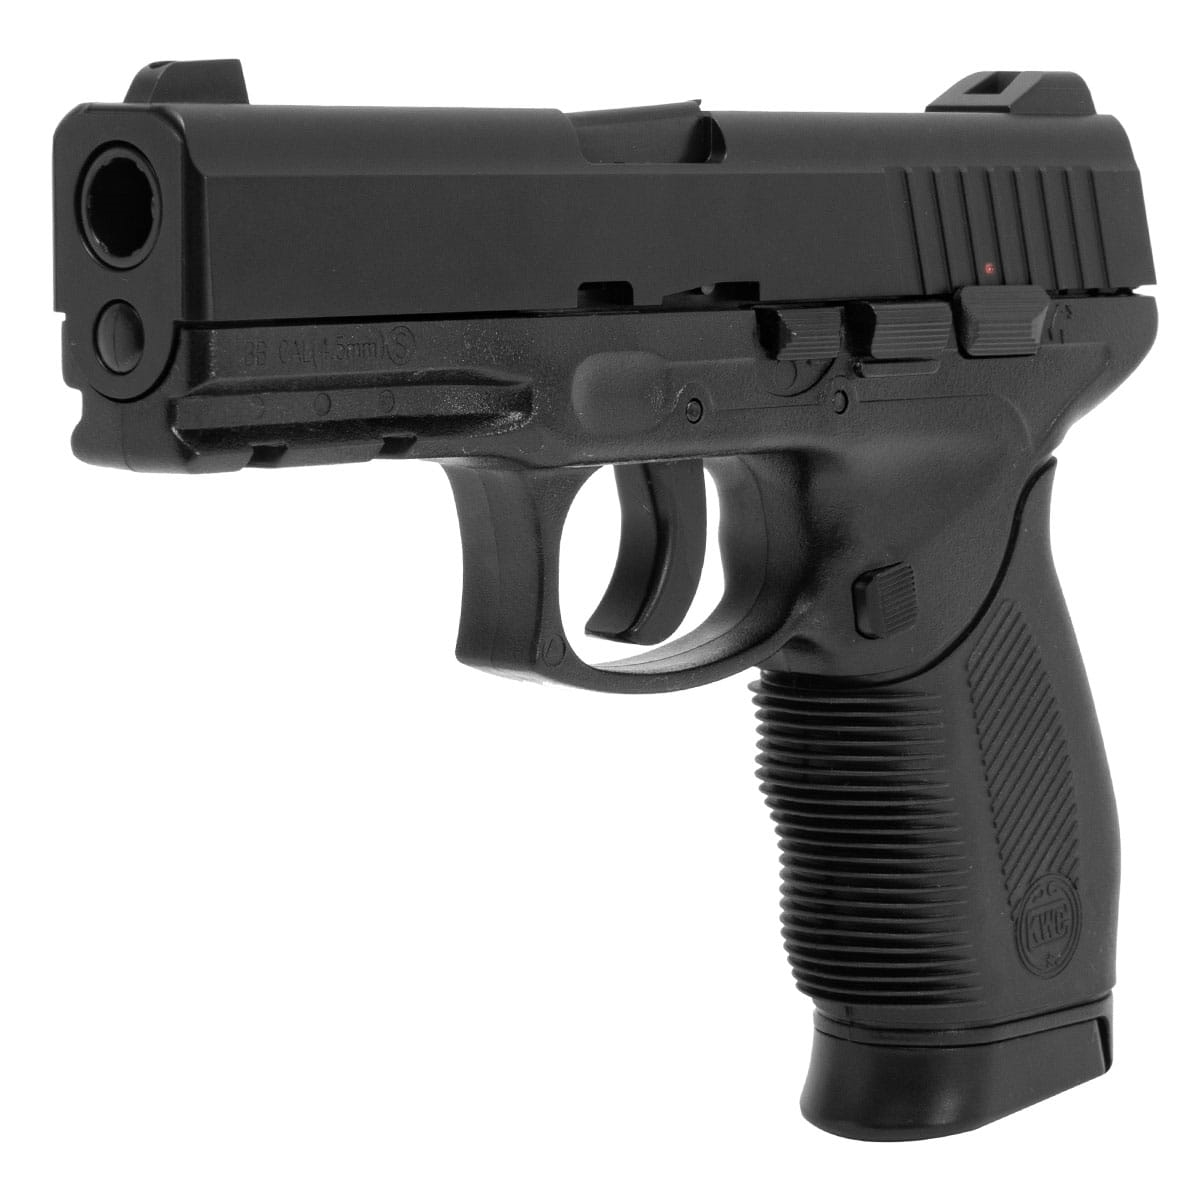 PISTOLA AIRGUN 24/7 NBB CO2 4,5MM - KWC